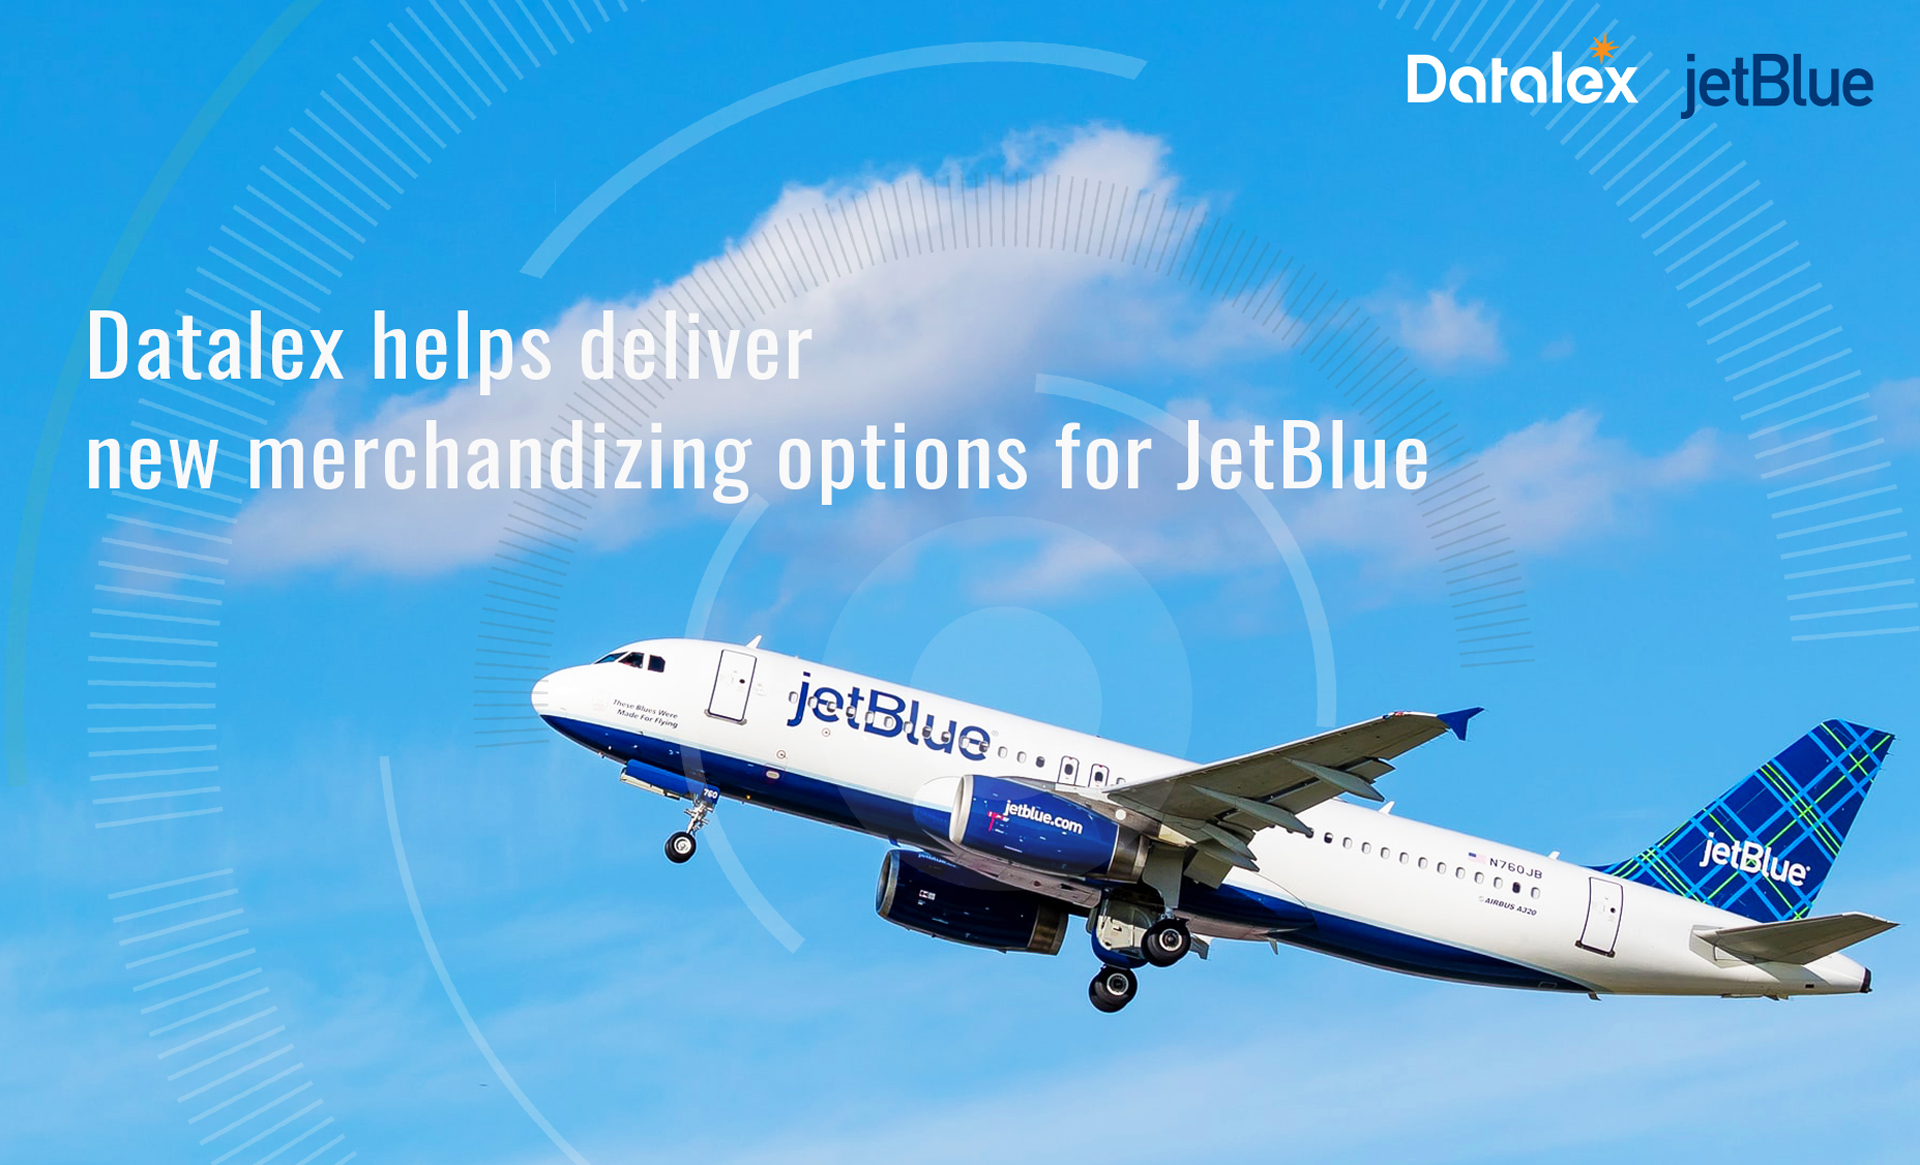 Datalex helps deliver new merchandizing options for JetBlue